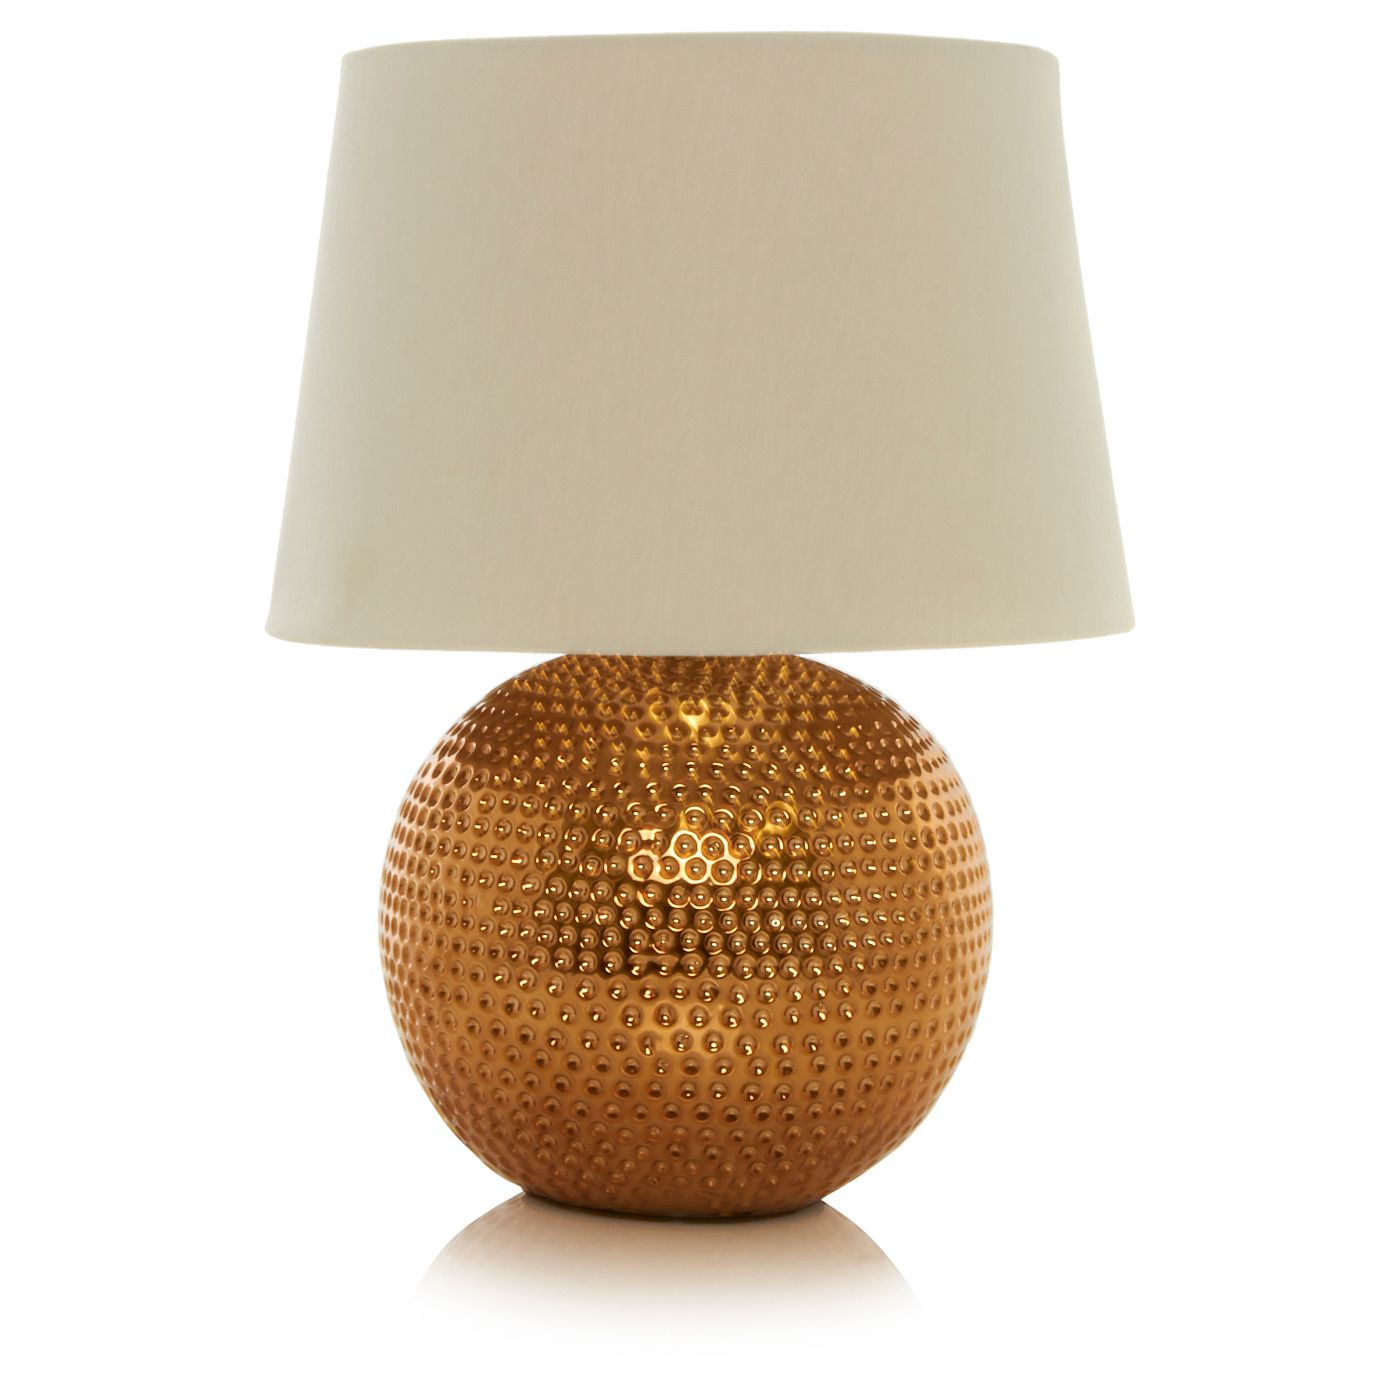 George Home Textured Copper Lamp